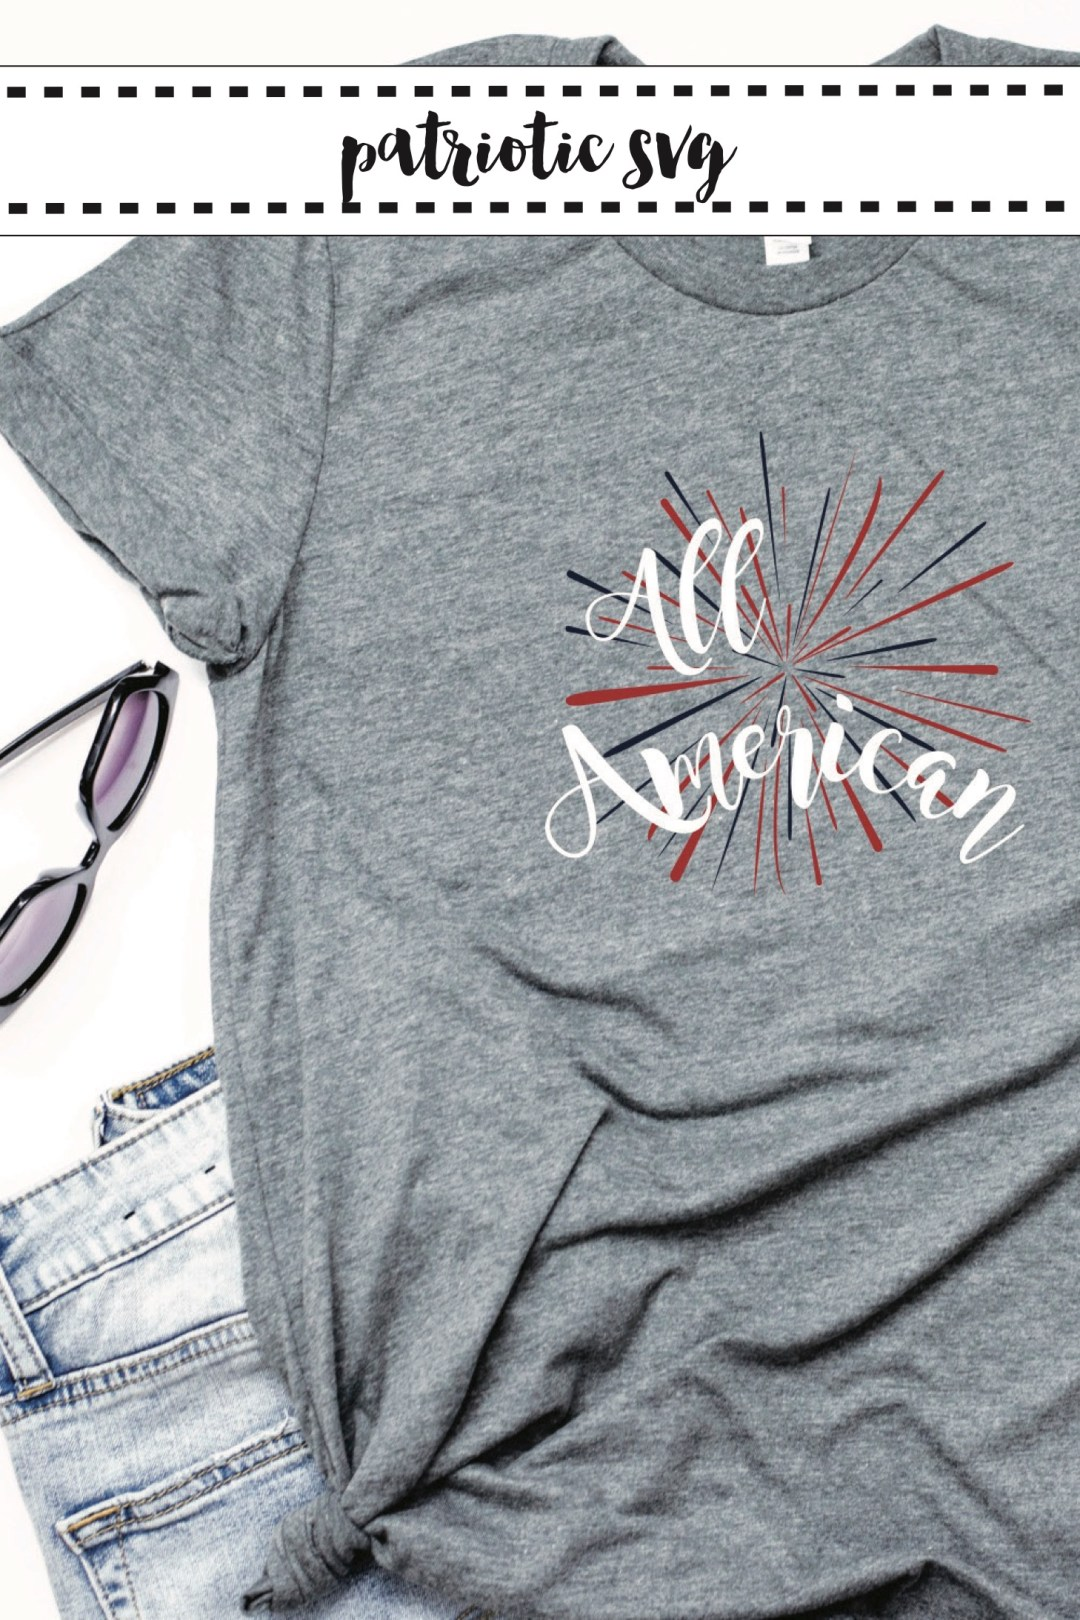 Fourth of July Shirt Jean Shorts Sunglasses